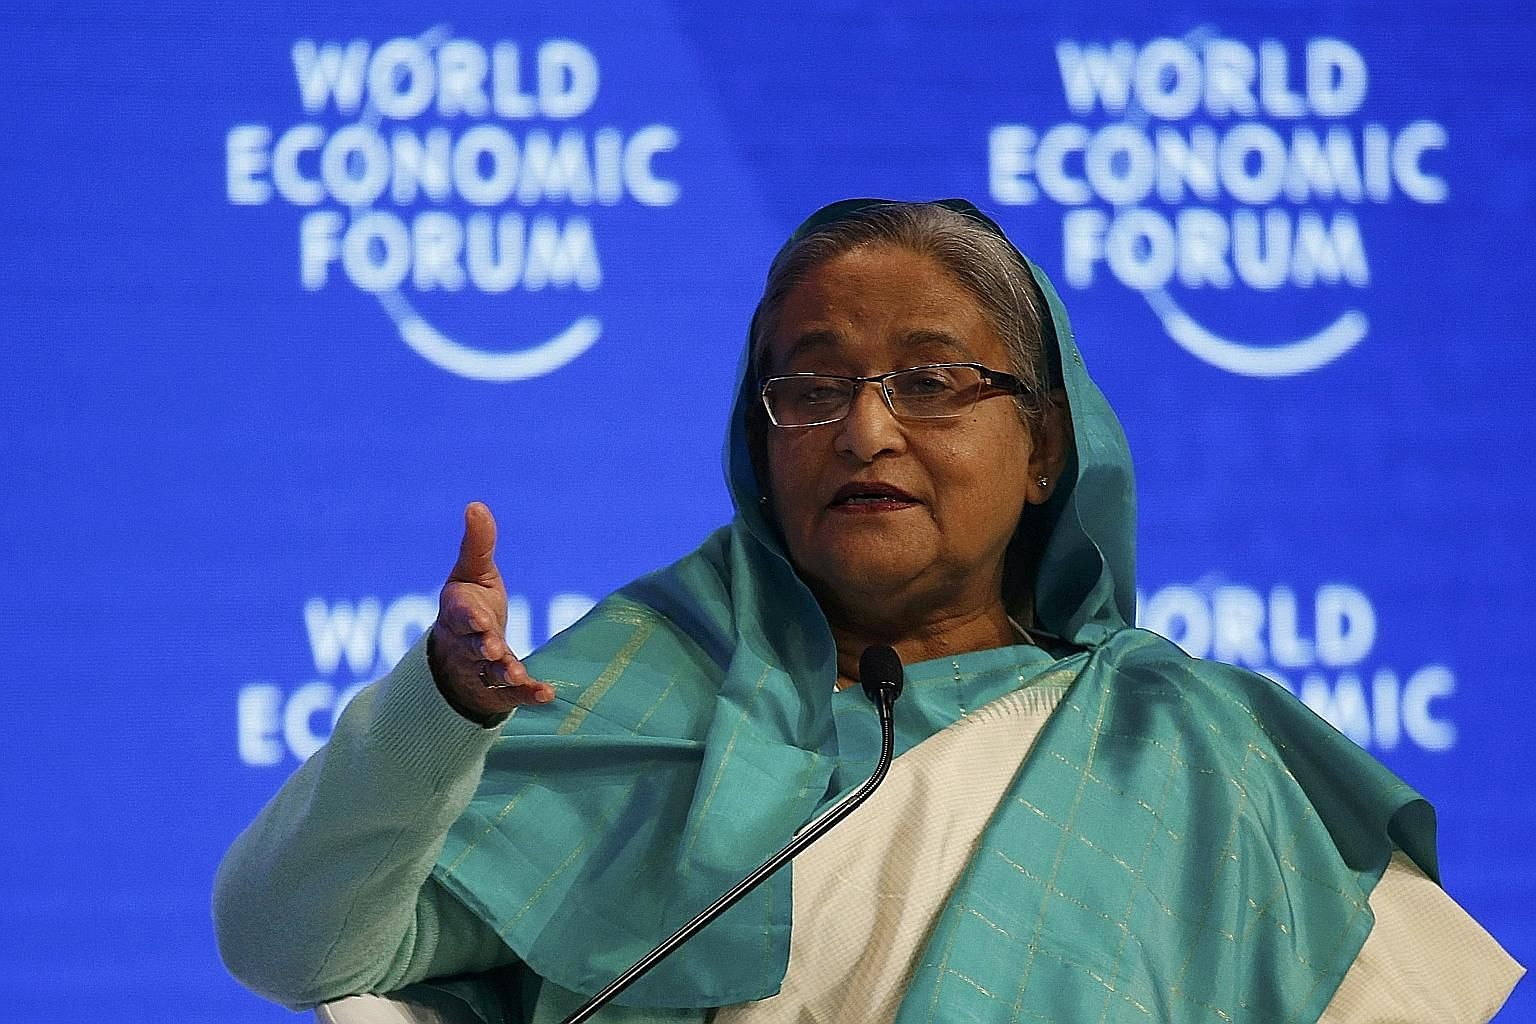 Bangladesh Prime Minister Sheikh Hasina has forged close ties with both India and China. The writer says Bangladesh must not take sides in any India-China rivalry.